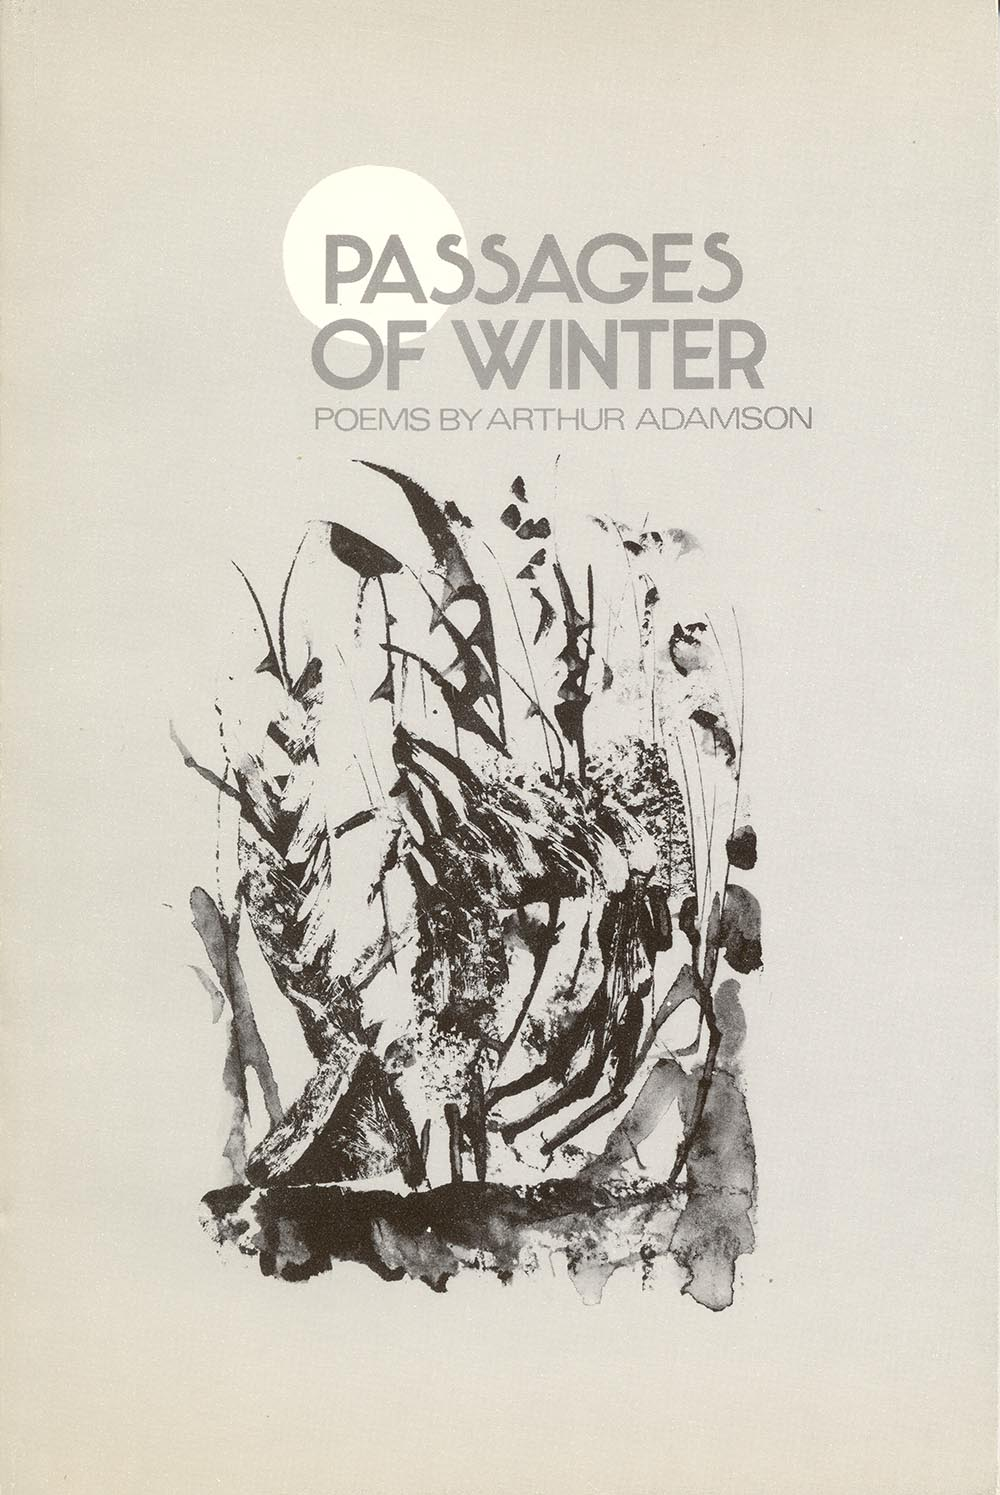 Passages of Winter by Arthur Adamson